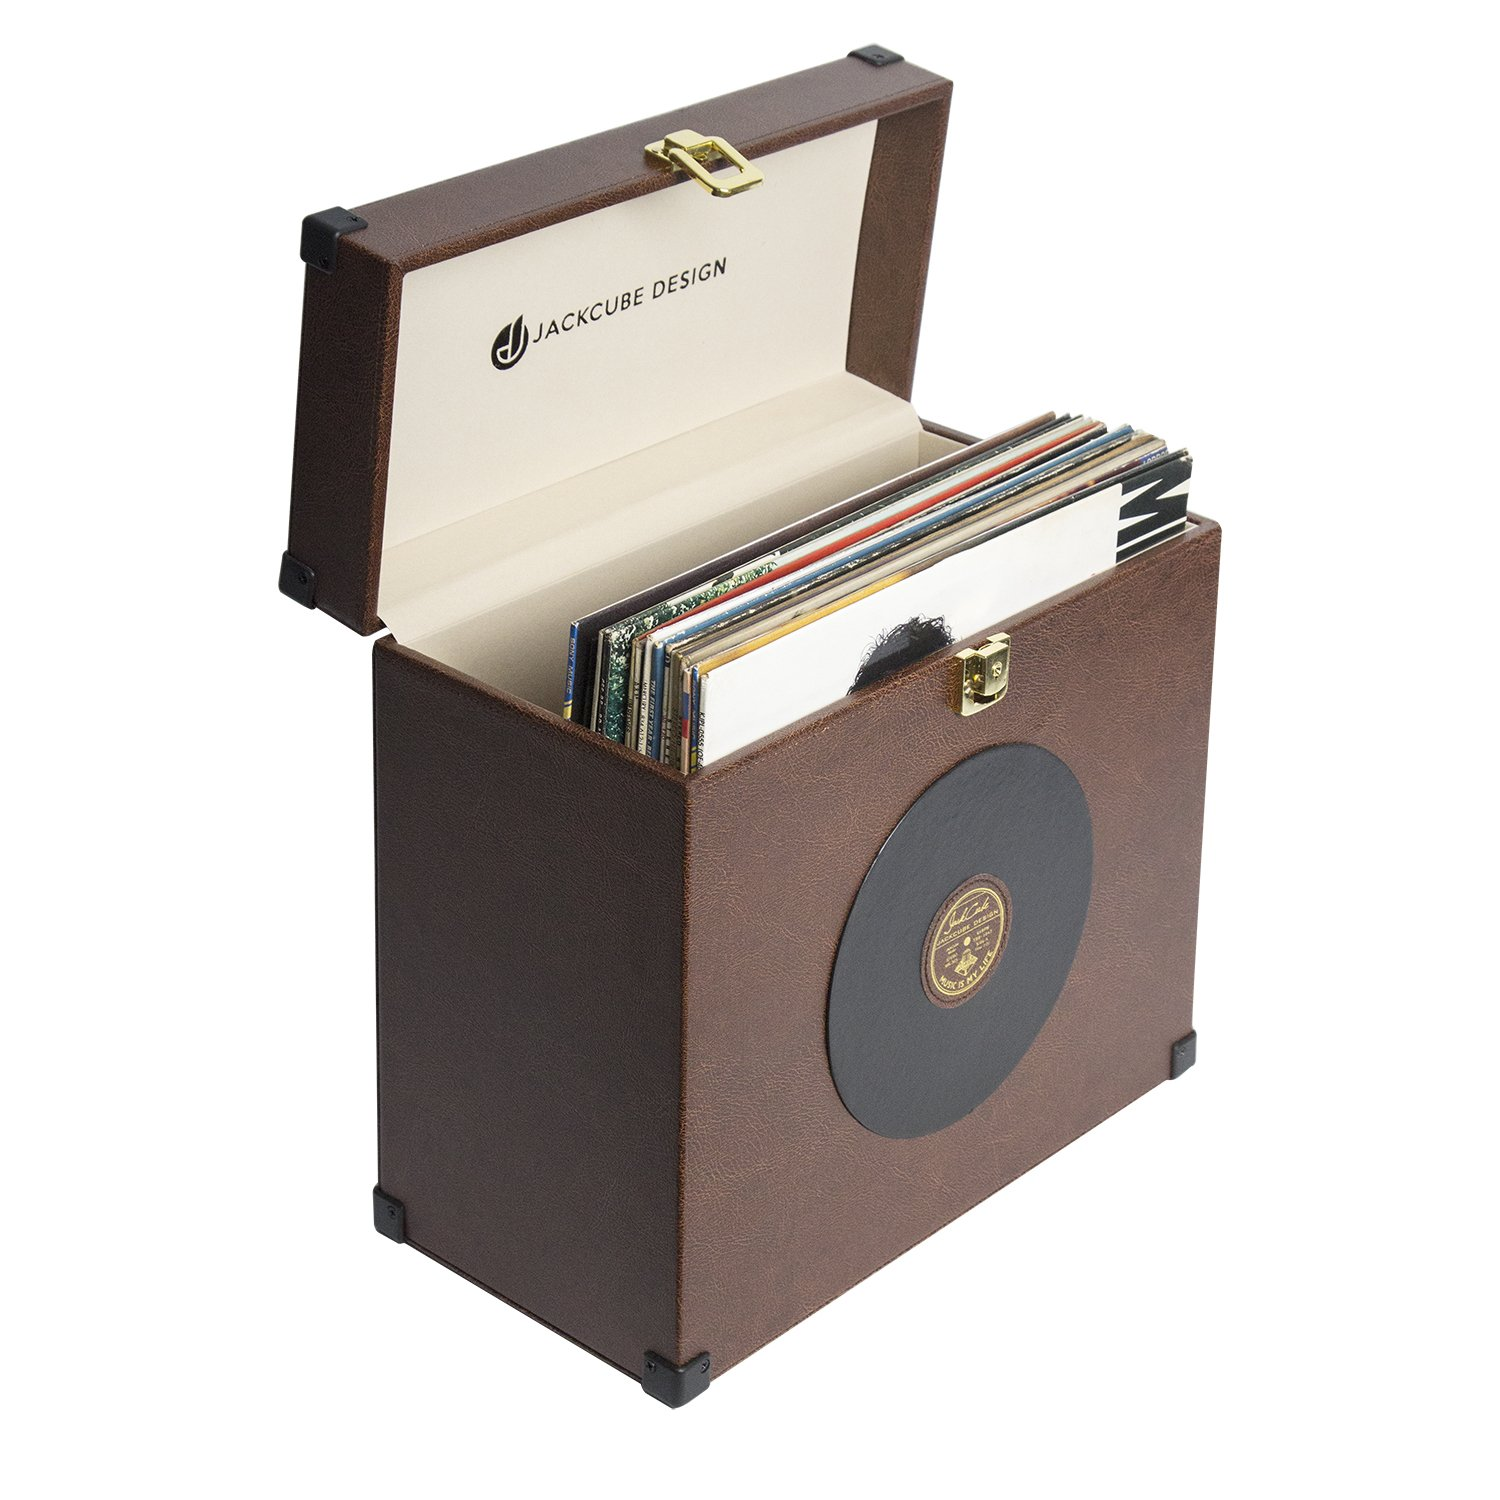 JackCubeDesign Leather LP Vinyl Record Album Storage Case Box Organizer Portable Carrier Display with Gold Metal Knob(Brown, 13.8 x 6.9 x 13.2 inches) - :MK365B by JackCubeDesign